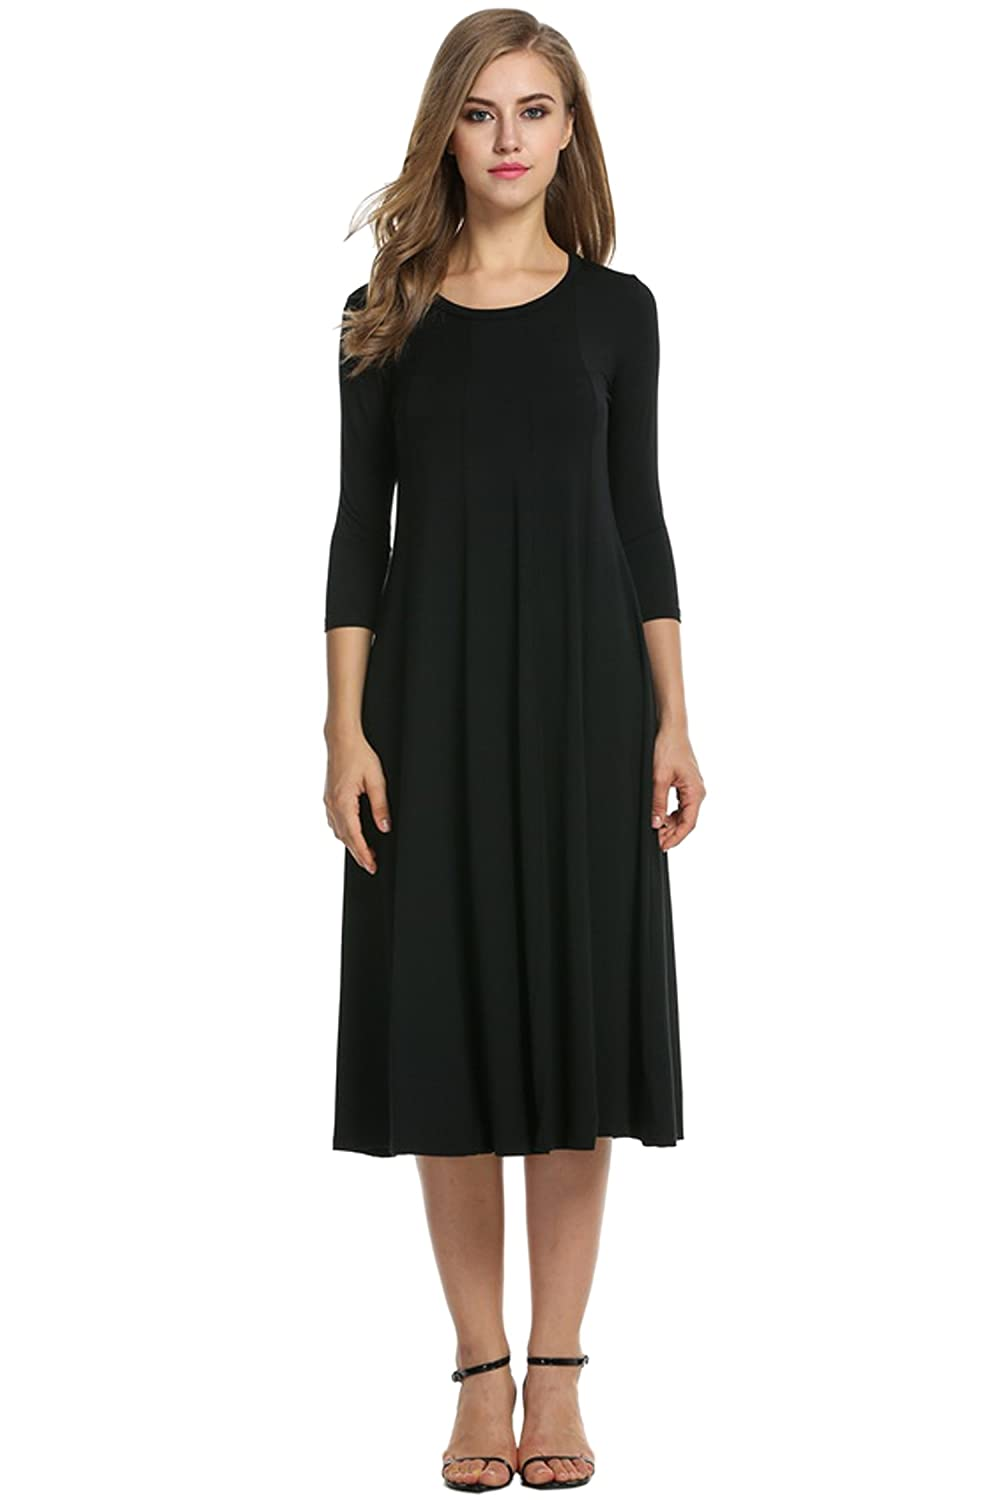 2f35b45744 Hotouch Women's 3/4 Sleeve A-line and Flare Midi Long Dress at Amazon Women's  Clothing store: